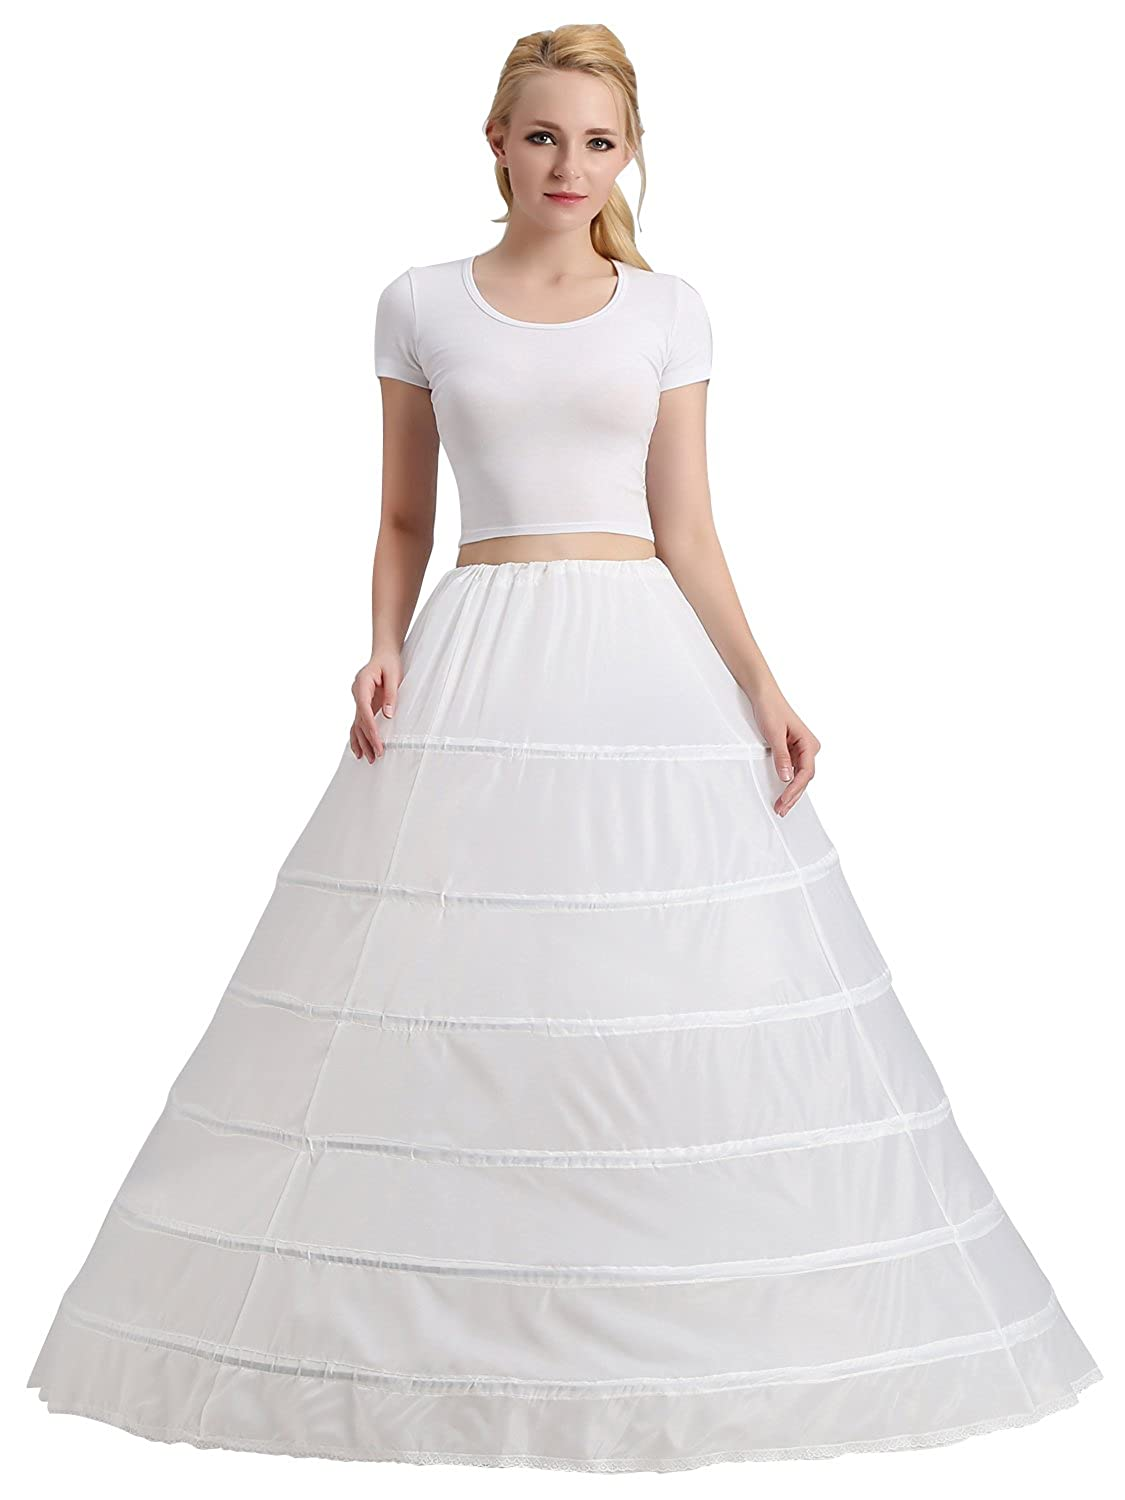 iLovewedding Women Petticoat for Ball Gown Dress Underwear Crinoline 6 Hoop